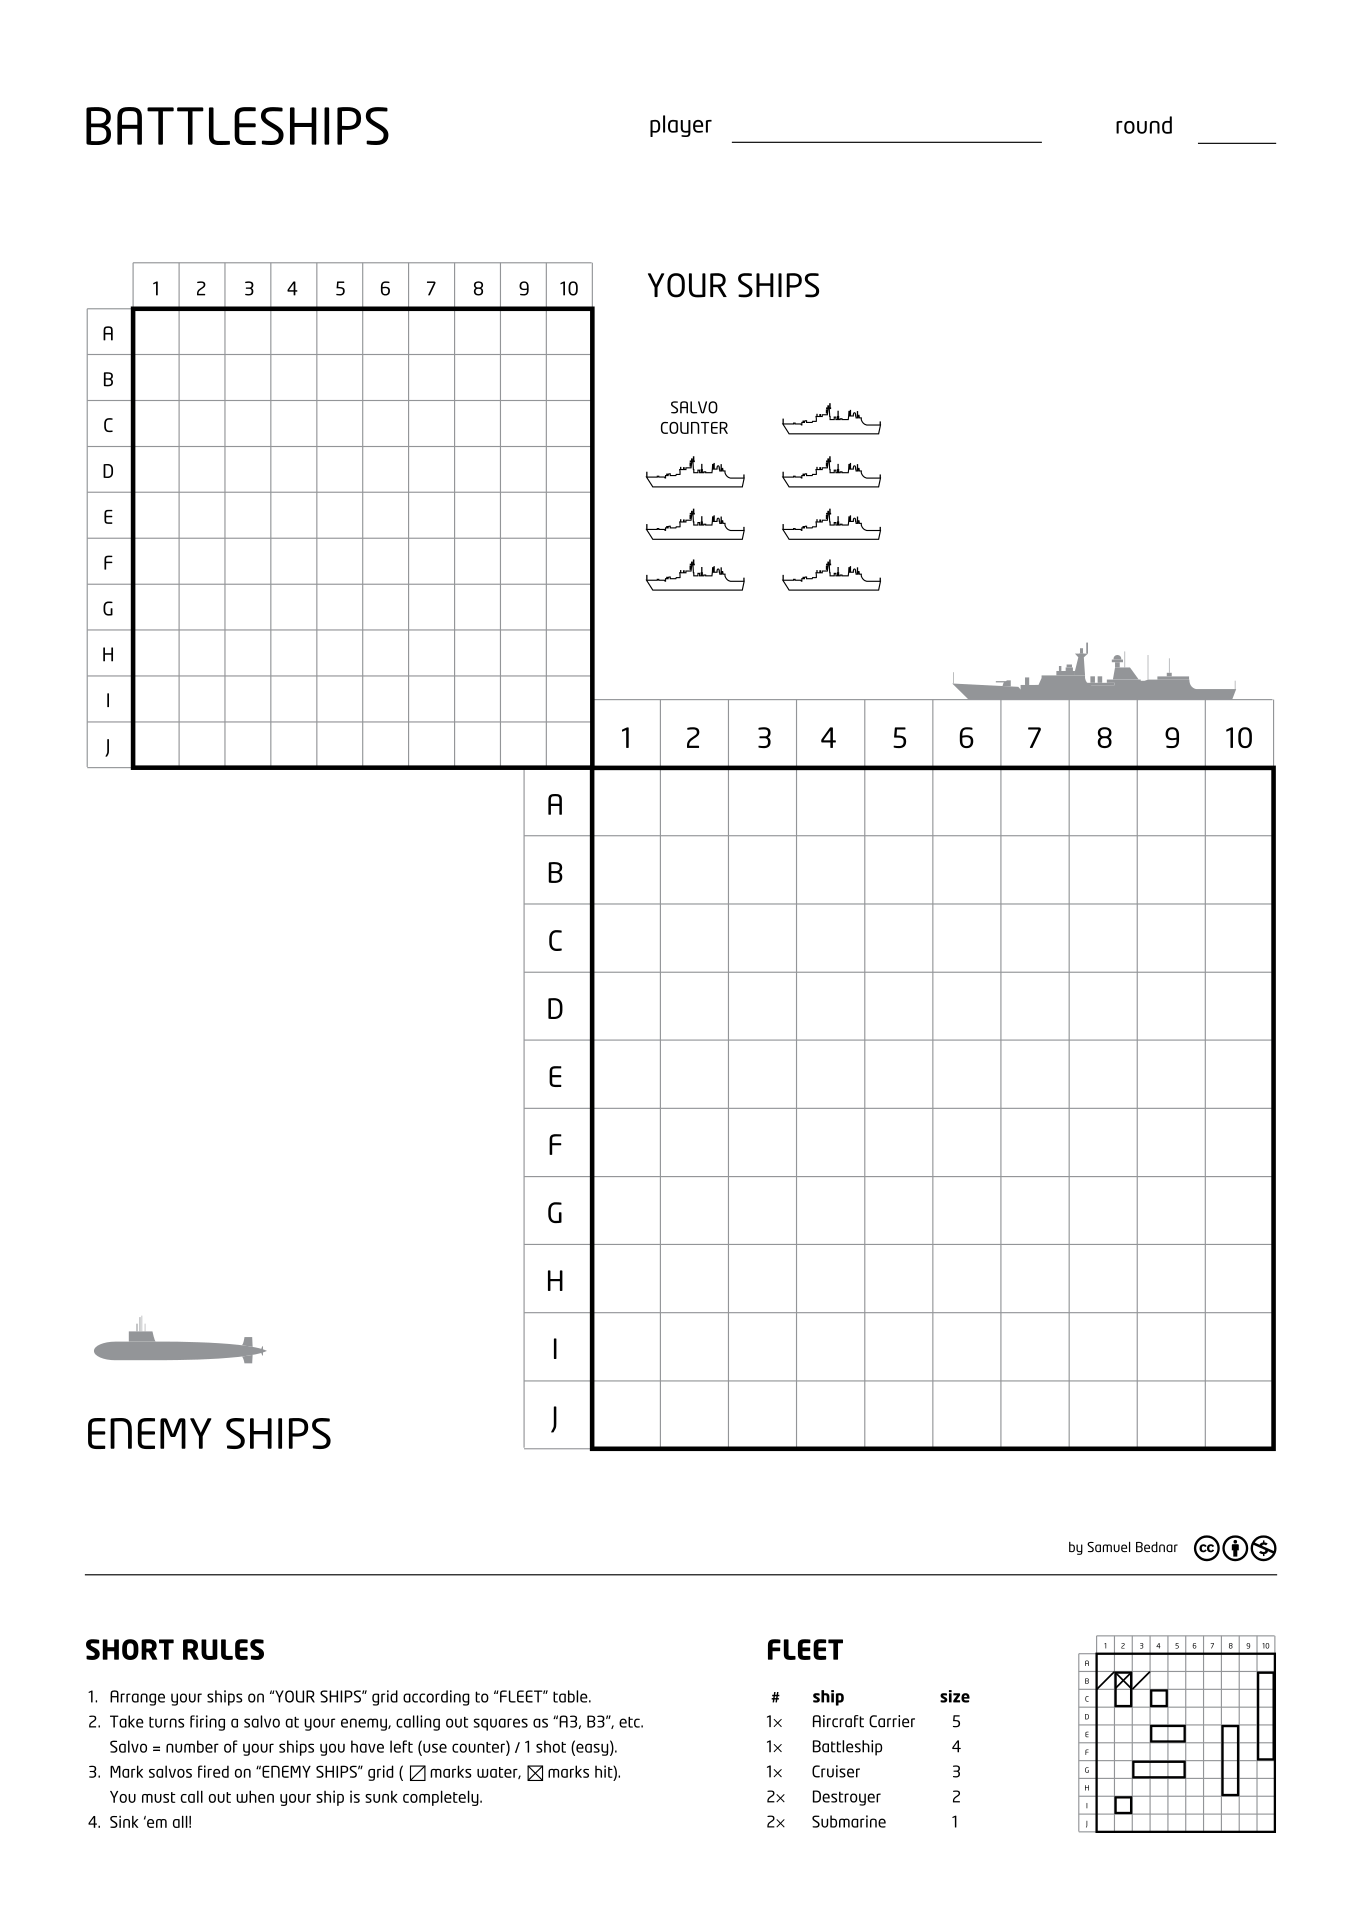 A Typical Pen And Paper Version Of The Game Showing The